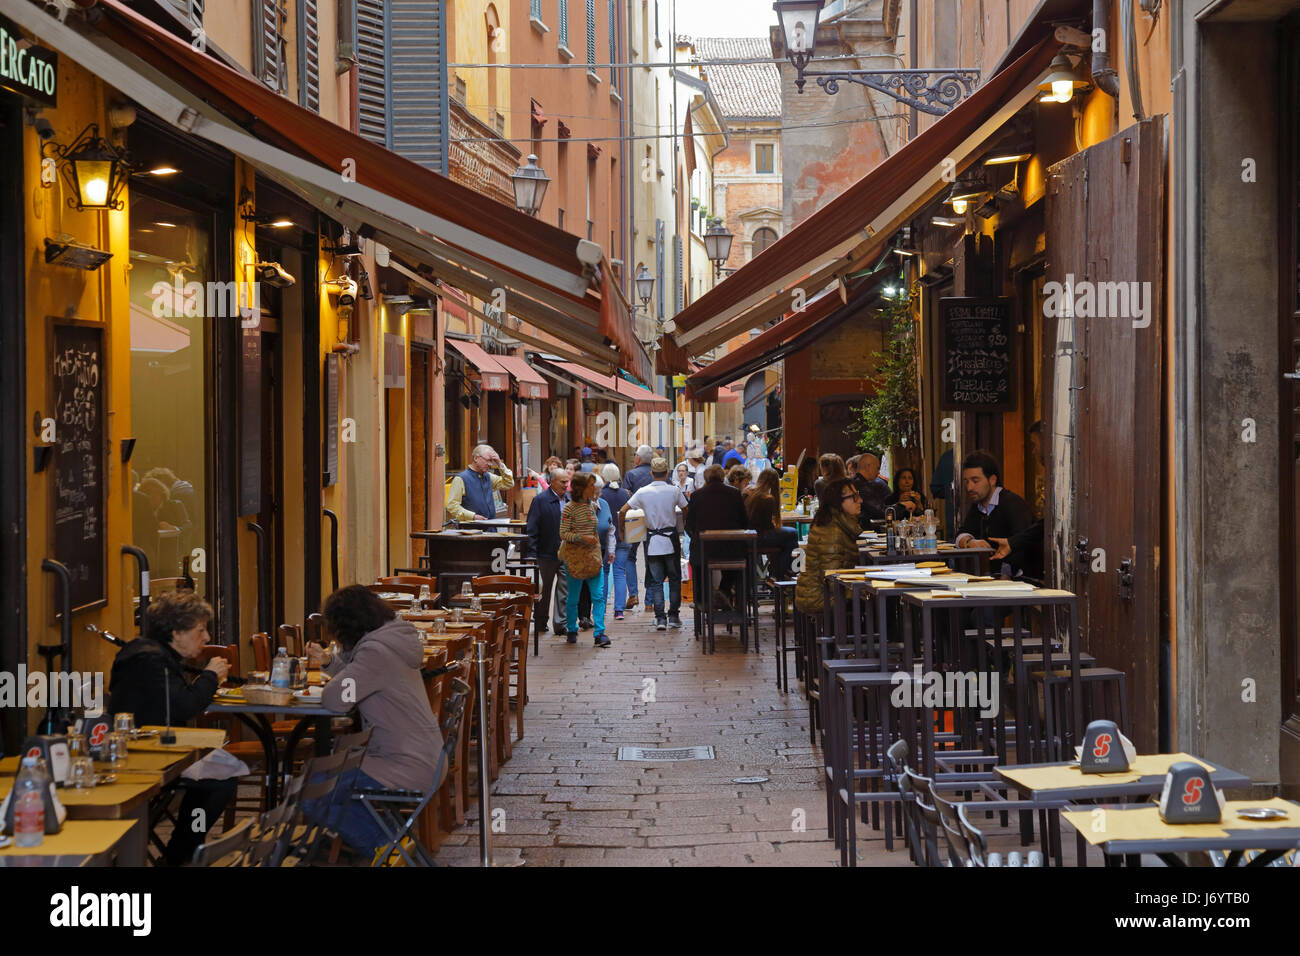 Cafes and bars on 'Foodie Street' Via Pescherie Vecchie, street of the Old Fish Mongers, Bologna, Emilia - Stock Image